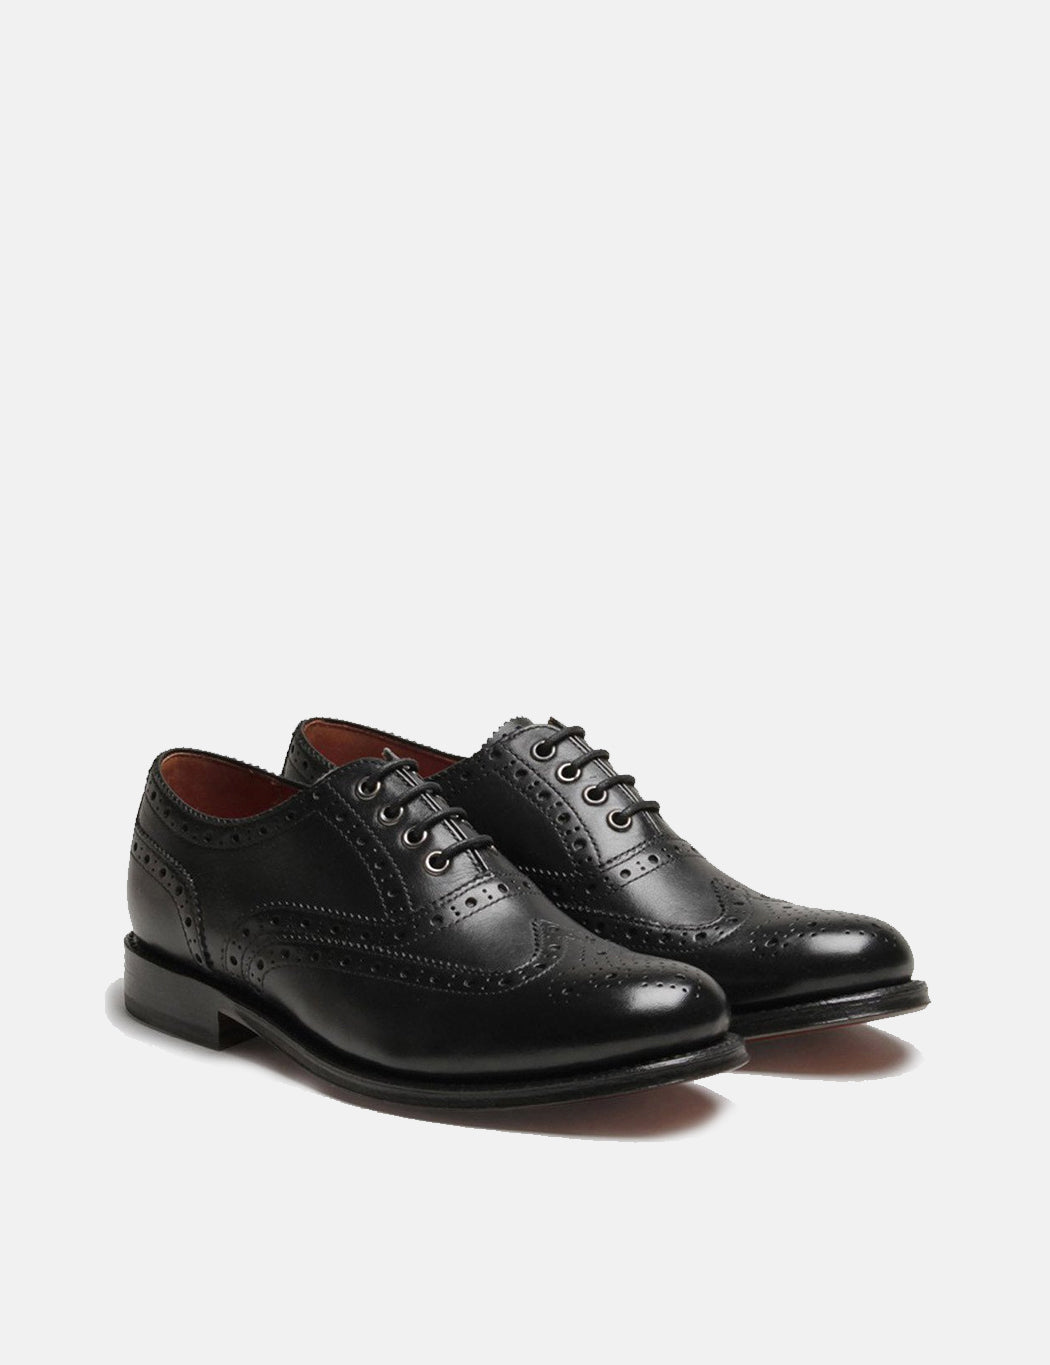 Shop Womens Grenson Rose Brogue Shoes - Black/Black | UE.